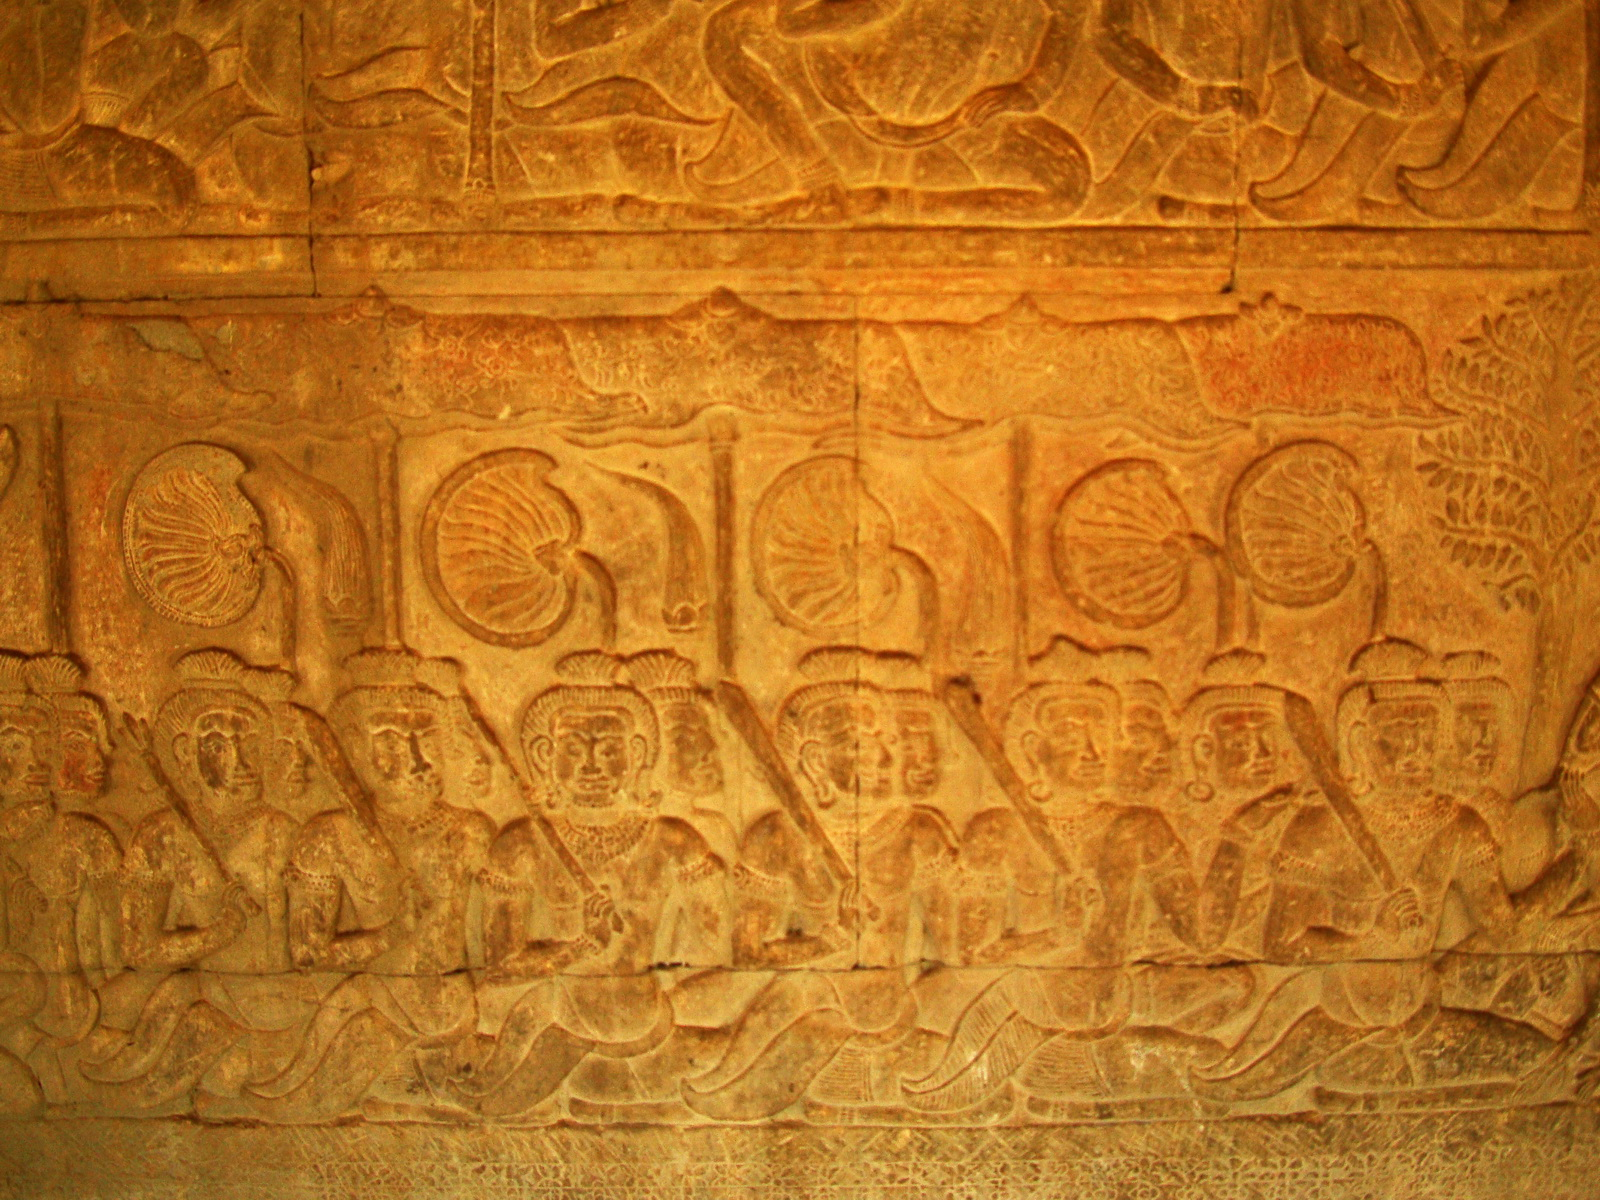 Angkor Wat Bas relief S Gallery E Wing Heavens and Hells 61